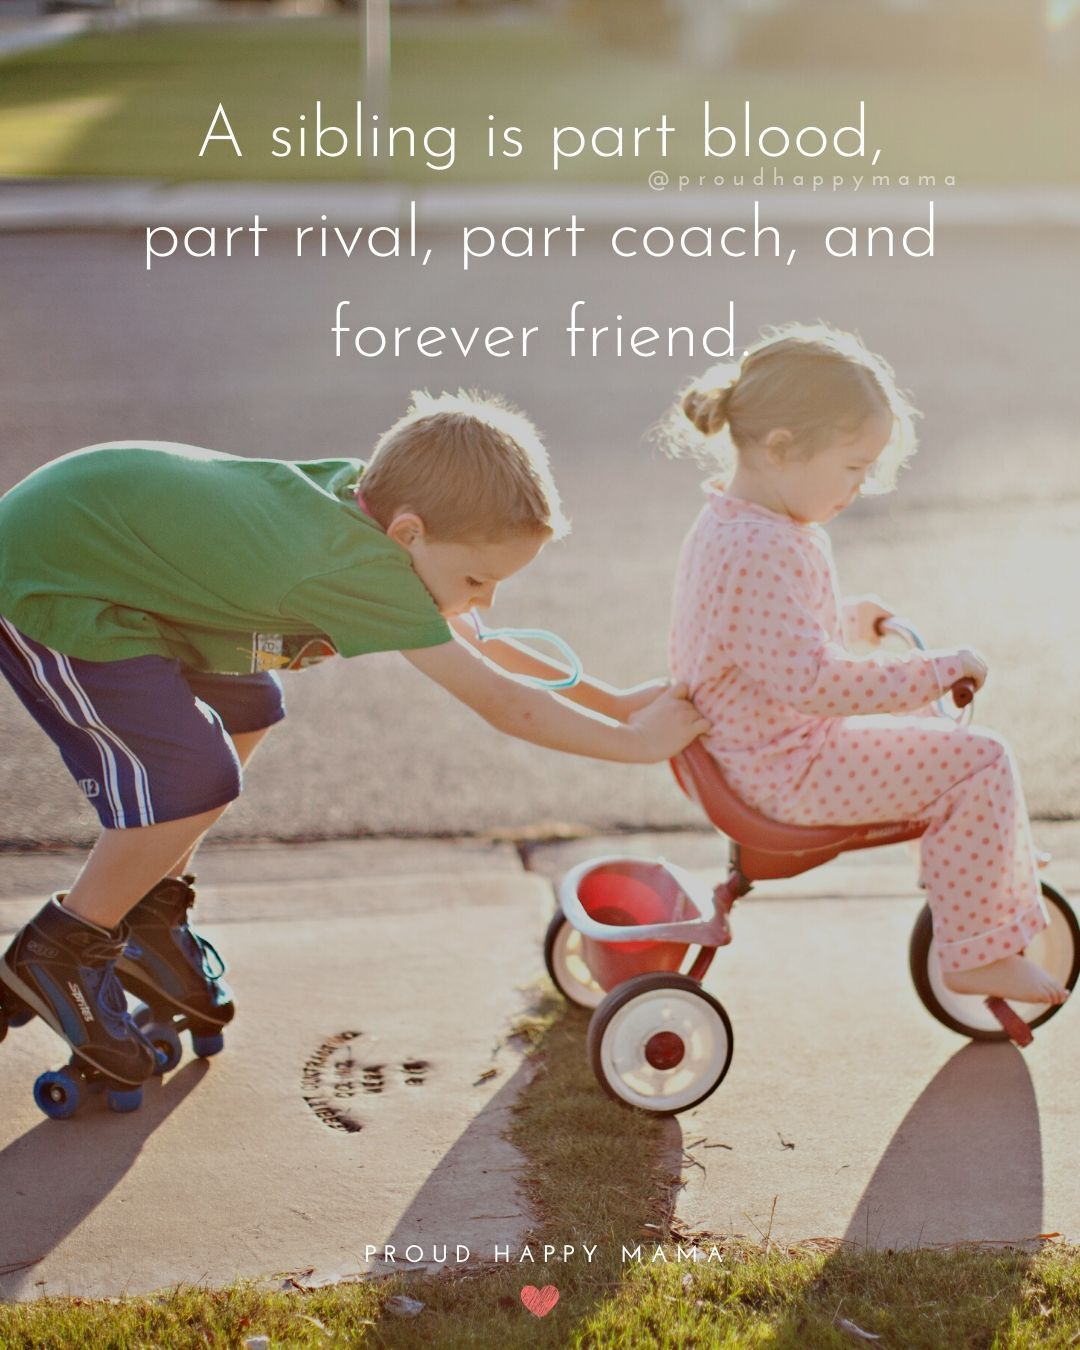 Are You Looking For The Best Sibling Love Quotes And Sayings Or An Inspirational Family Quote To Celebr Brother Sister Quotes Sister Quotes Sister Love Quotes